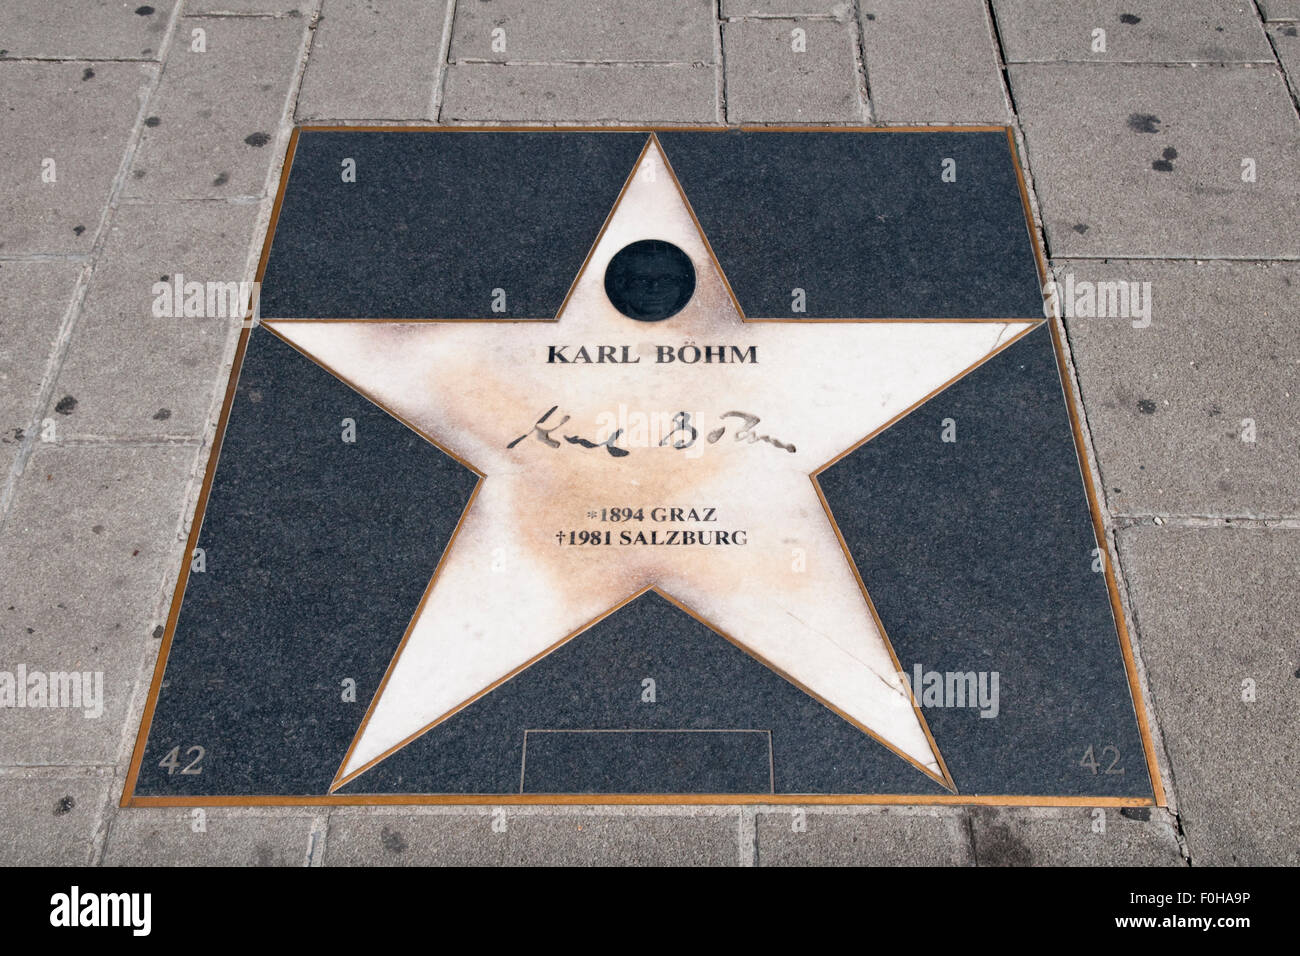 A Hollywood style star commemorating the Austrian conductor Karl August Leopold Böhm in Vienna, Austria - Stock Image